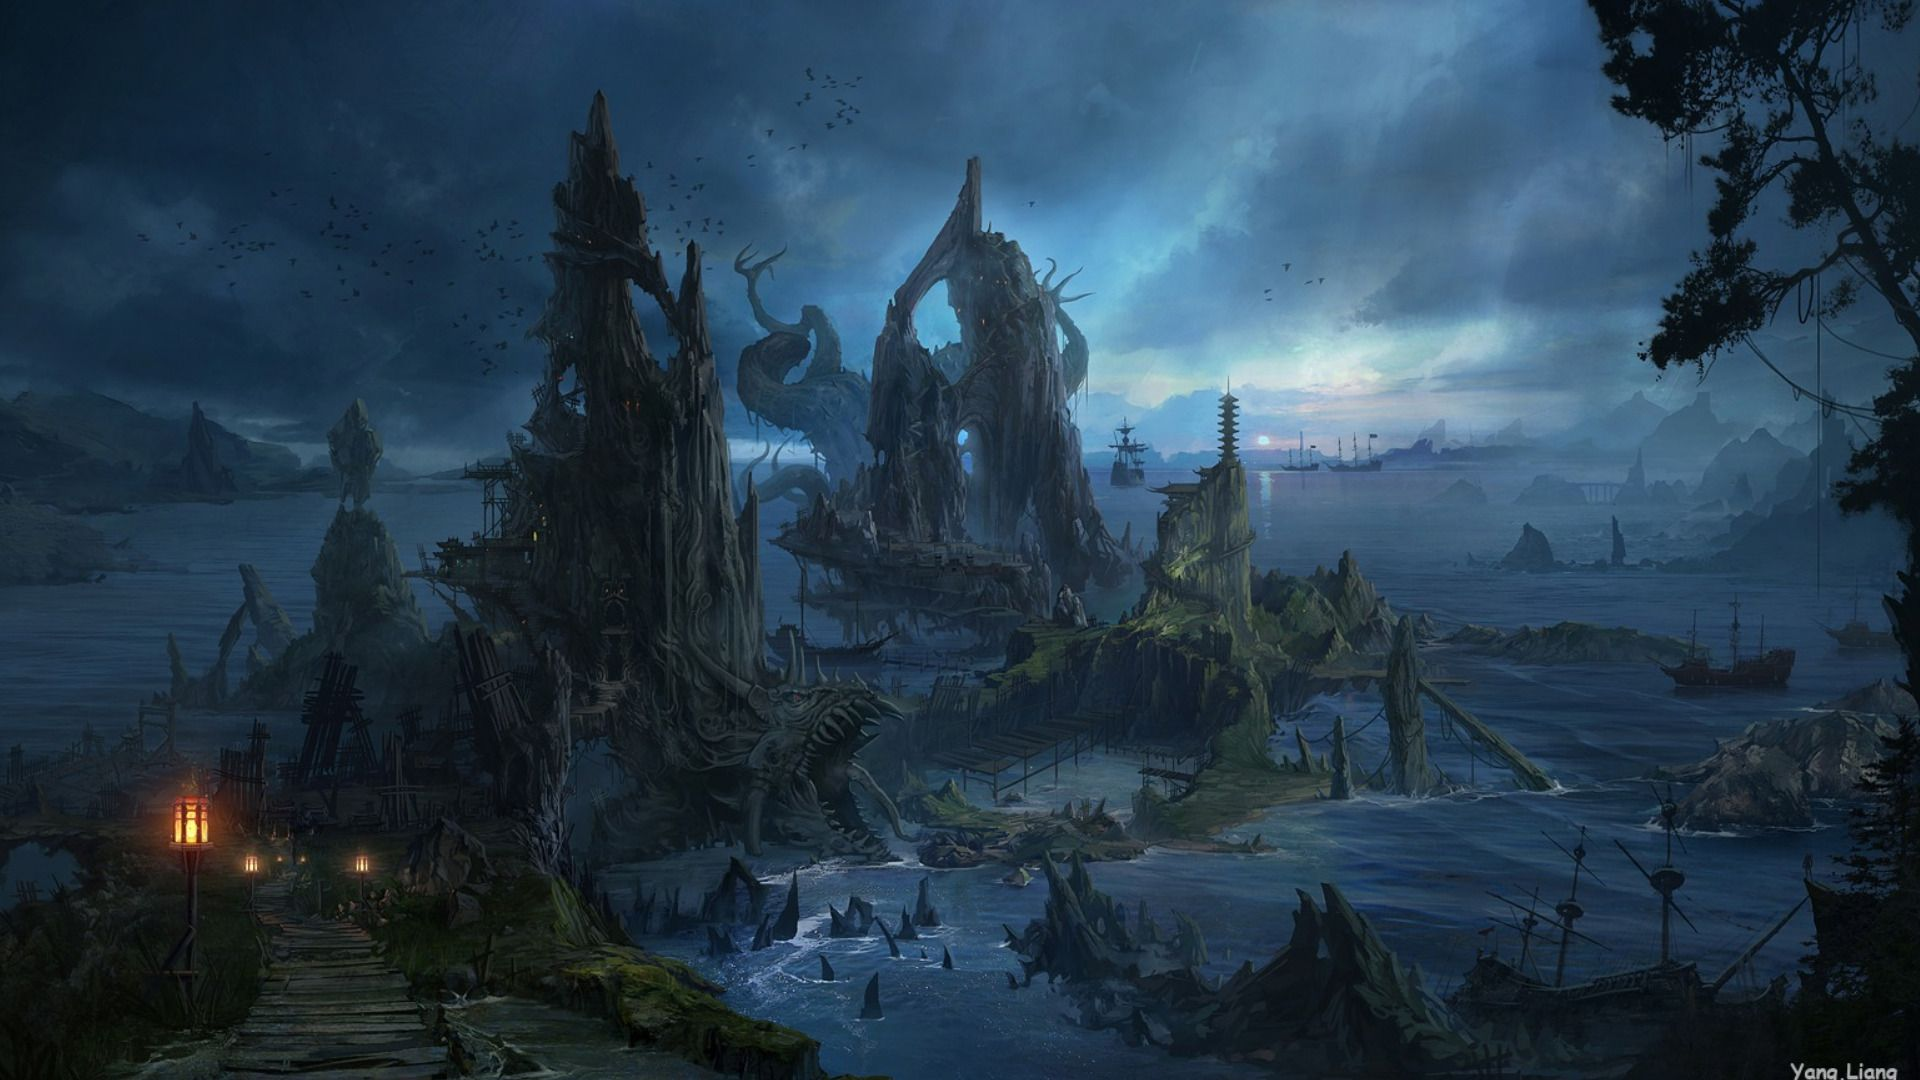 Images For Epic Fantasy Landscape Wallpapers In 2019